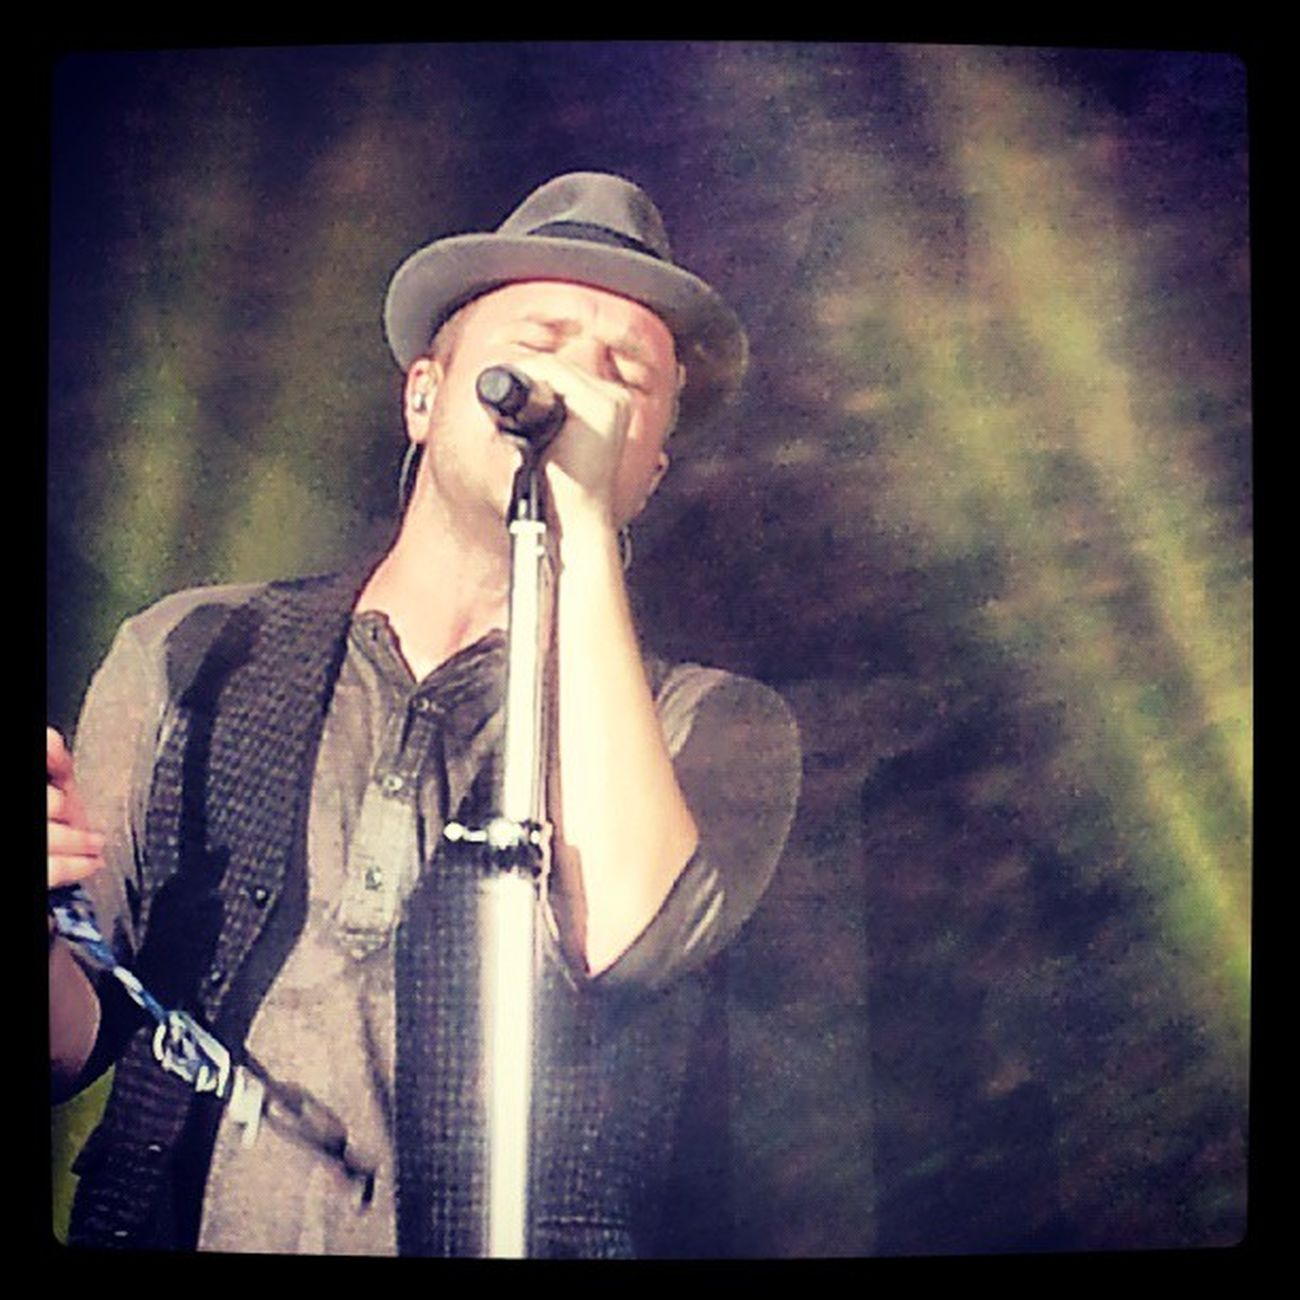 Olly Murs Concert Stuttgart great show love fanboy dear darlin i love this music front row my 2 Home! :) good night world &' GERMANMURSARMY.